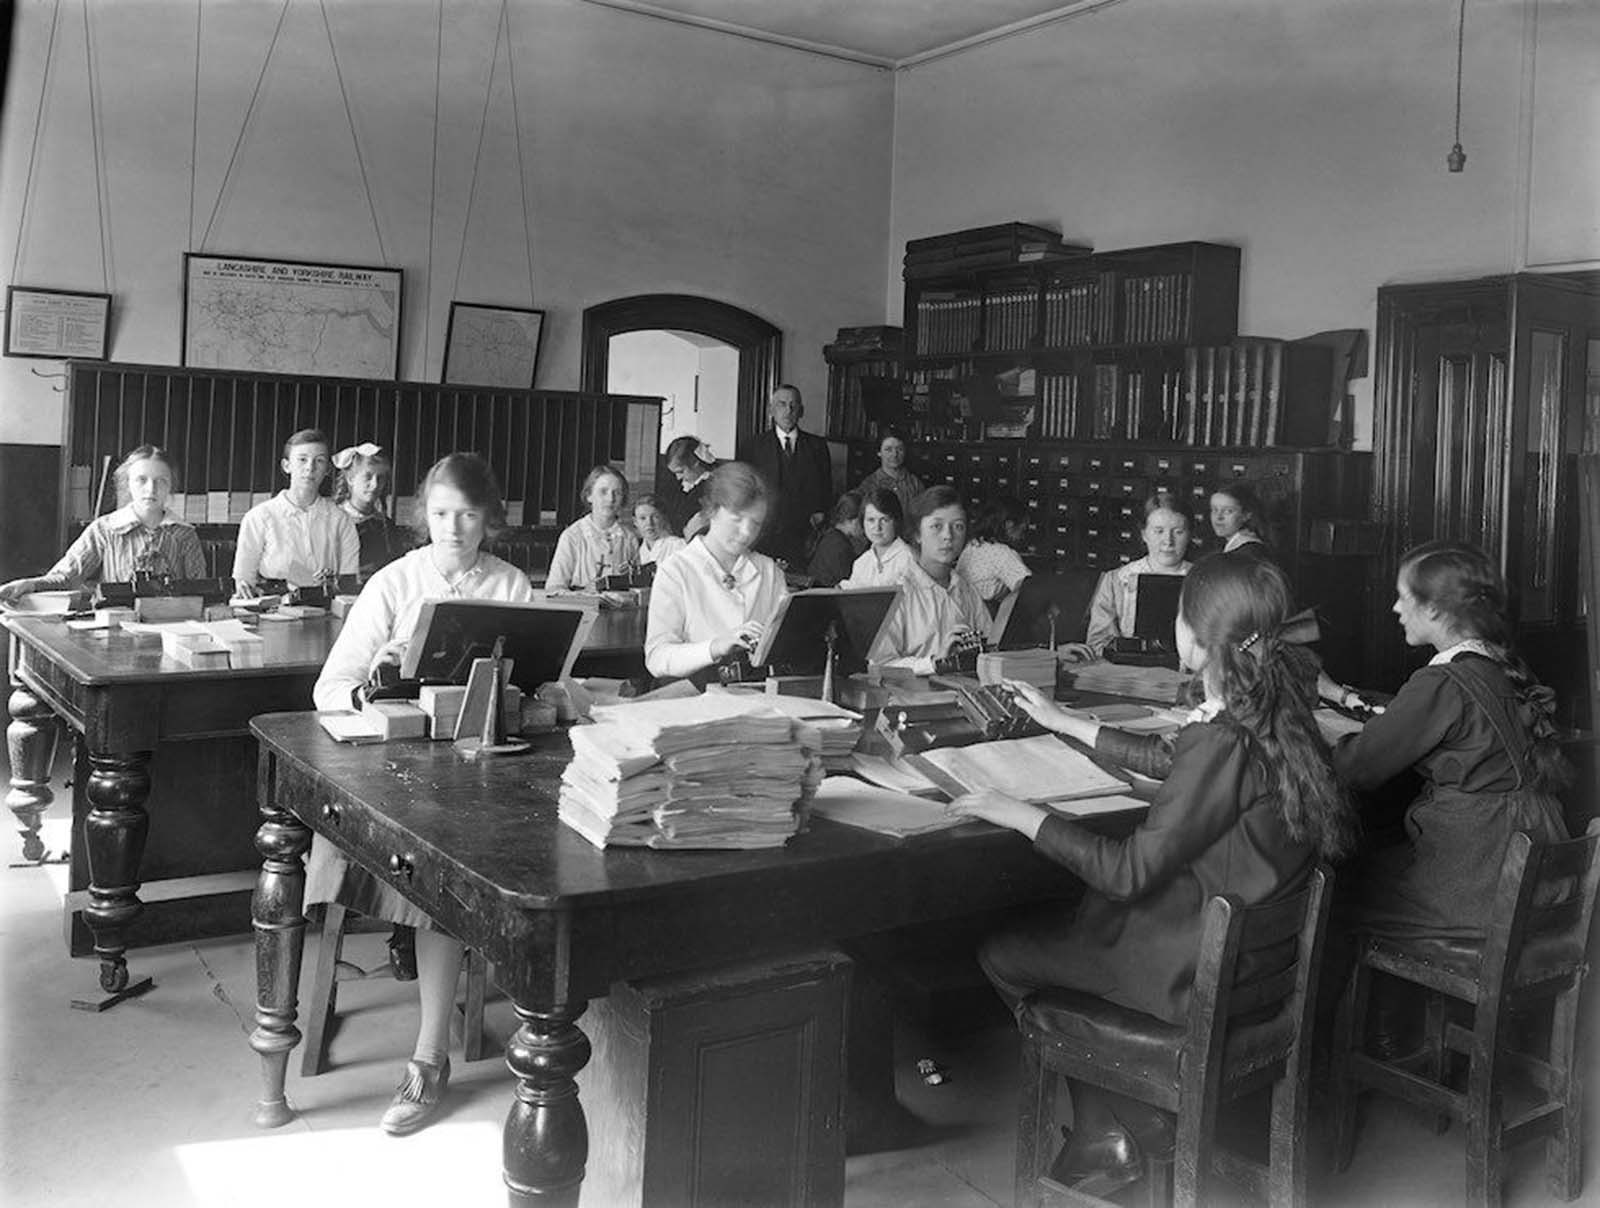 Office at the railway works in Horwich, Lancashire, England. During the First World War many male rail workers joined the army, so women were employed in their place, in a variety of roles including blacksmiths, welders and electricians. Most of the women in this office wear white blouses, but the blouses are more closely fitting than in the previous picture. Their hair is still worn up, though now more loosely, and one woman — at the card cabinets — has shoulder-length hair worn down, while another wears long braids. At least two younger women also have white bows in their hair. The woman in the left foreground shows a shorter skirt length and a leather shoe with a golfing-style flap. 1917.